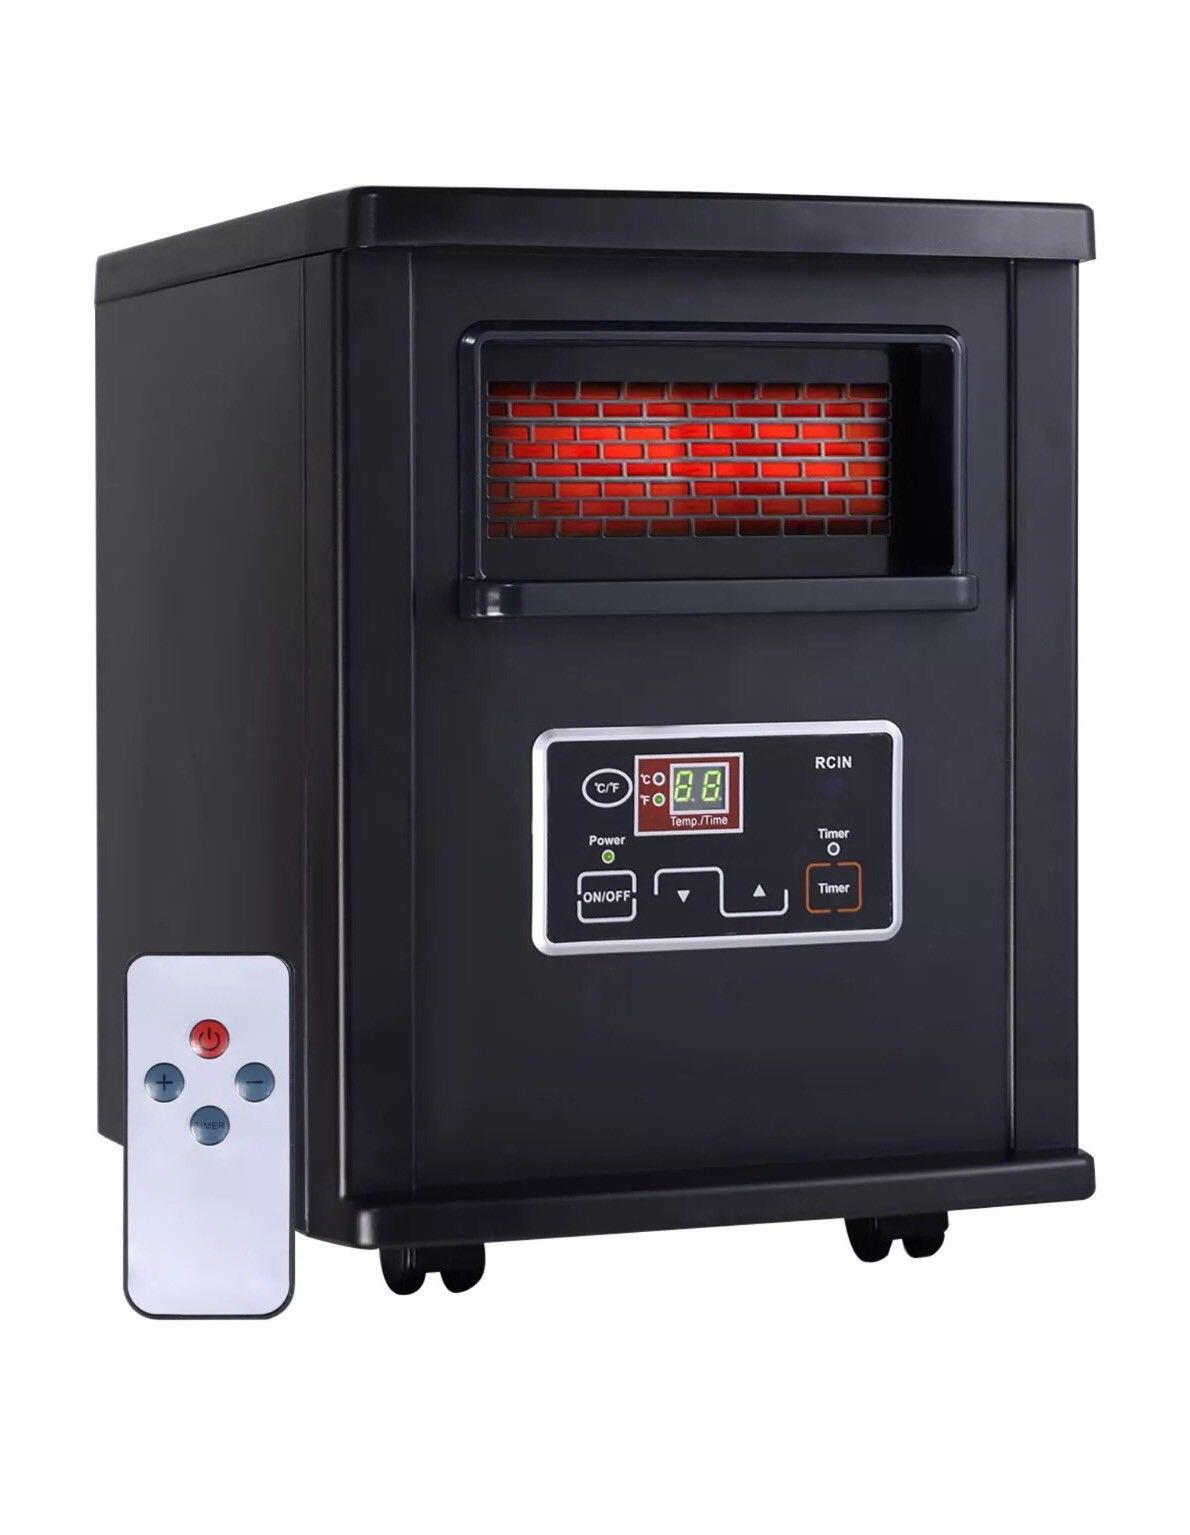 Garage Heater Craigslist Infrared Heater For Sale Only 3 Left At 75